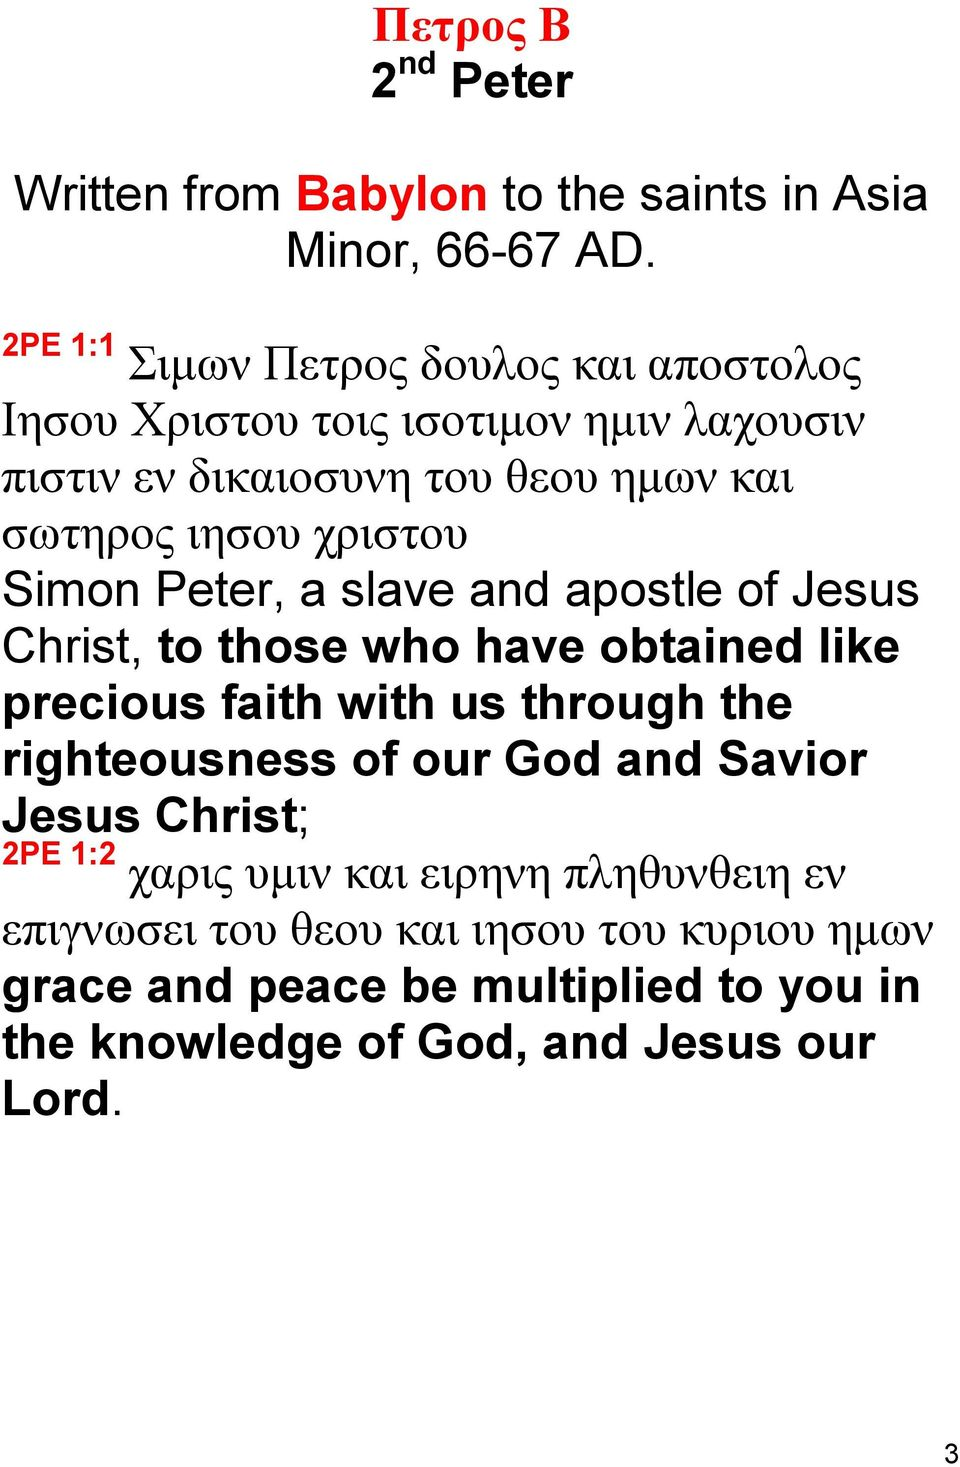 χριστου Simon Peter, a slave and apostle of Jesus Christ, to those who have obtained like precious faith with us through the righteousness